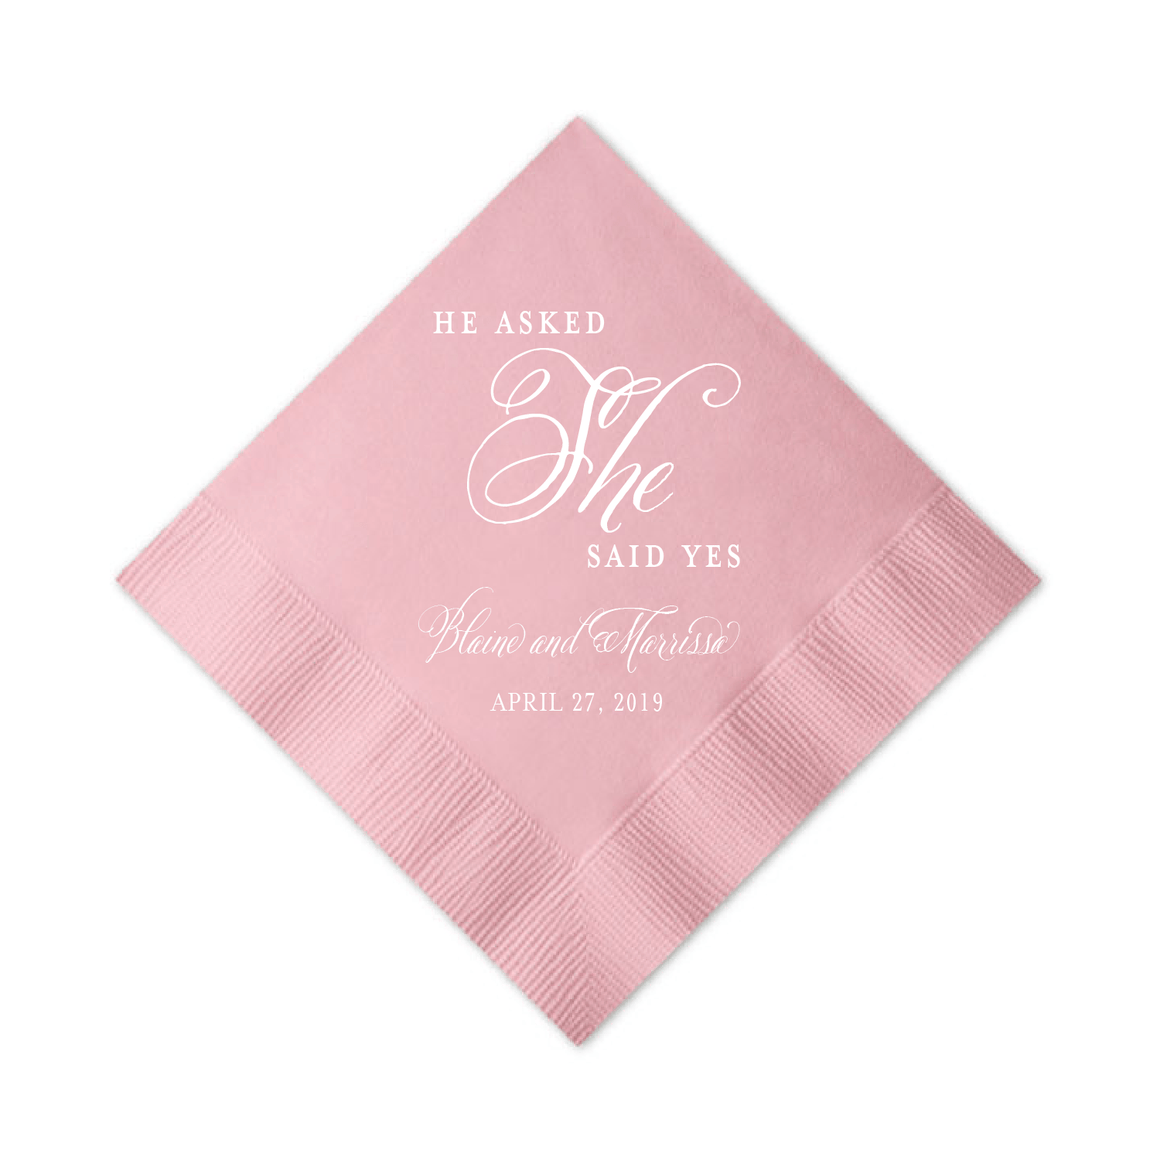 Personalized Bridal Shower Napkin - He Asked, She Said Yes Personalized Bridal Shower Napkins